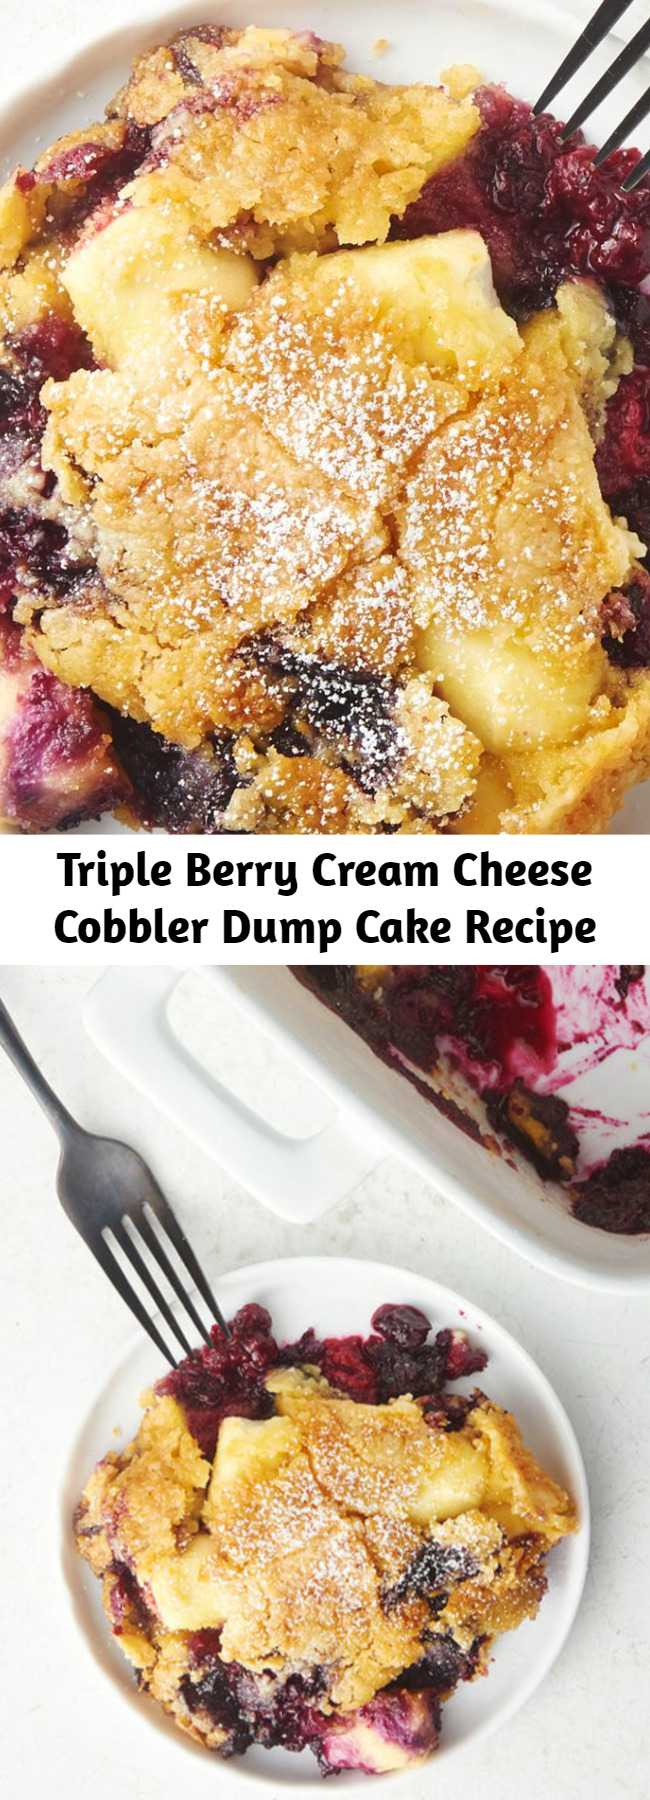 Triple Berry Cream Cheese Cobbler Dump Cake Recipe - When a fresh berry cobbler meets an easy dump cake, the end result is pure magic. Raspberries, blueberries and blackberries get mixed with cream cheese and cake mix for an easy dessert that's no-fuss and totally delicious.